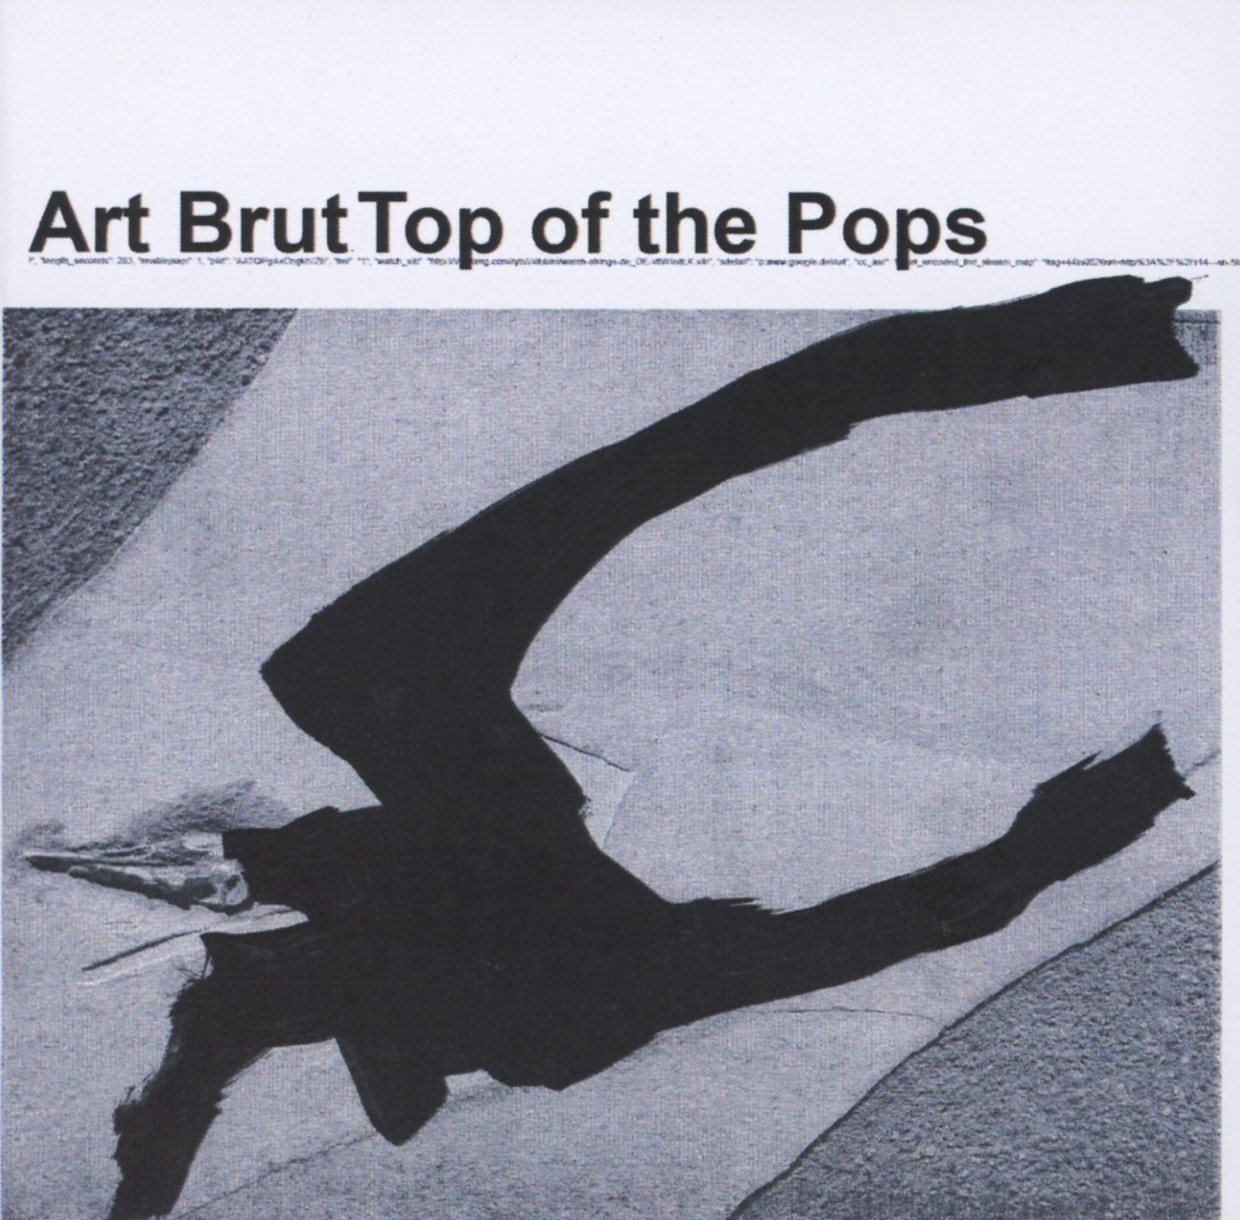 Art-Brut-Top-of-the-Pops